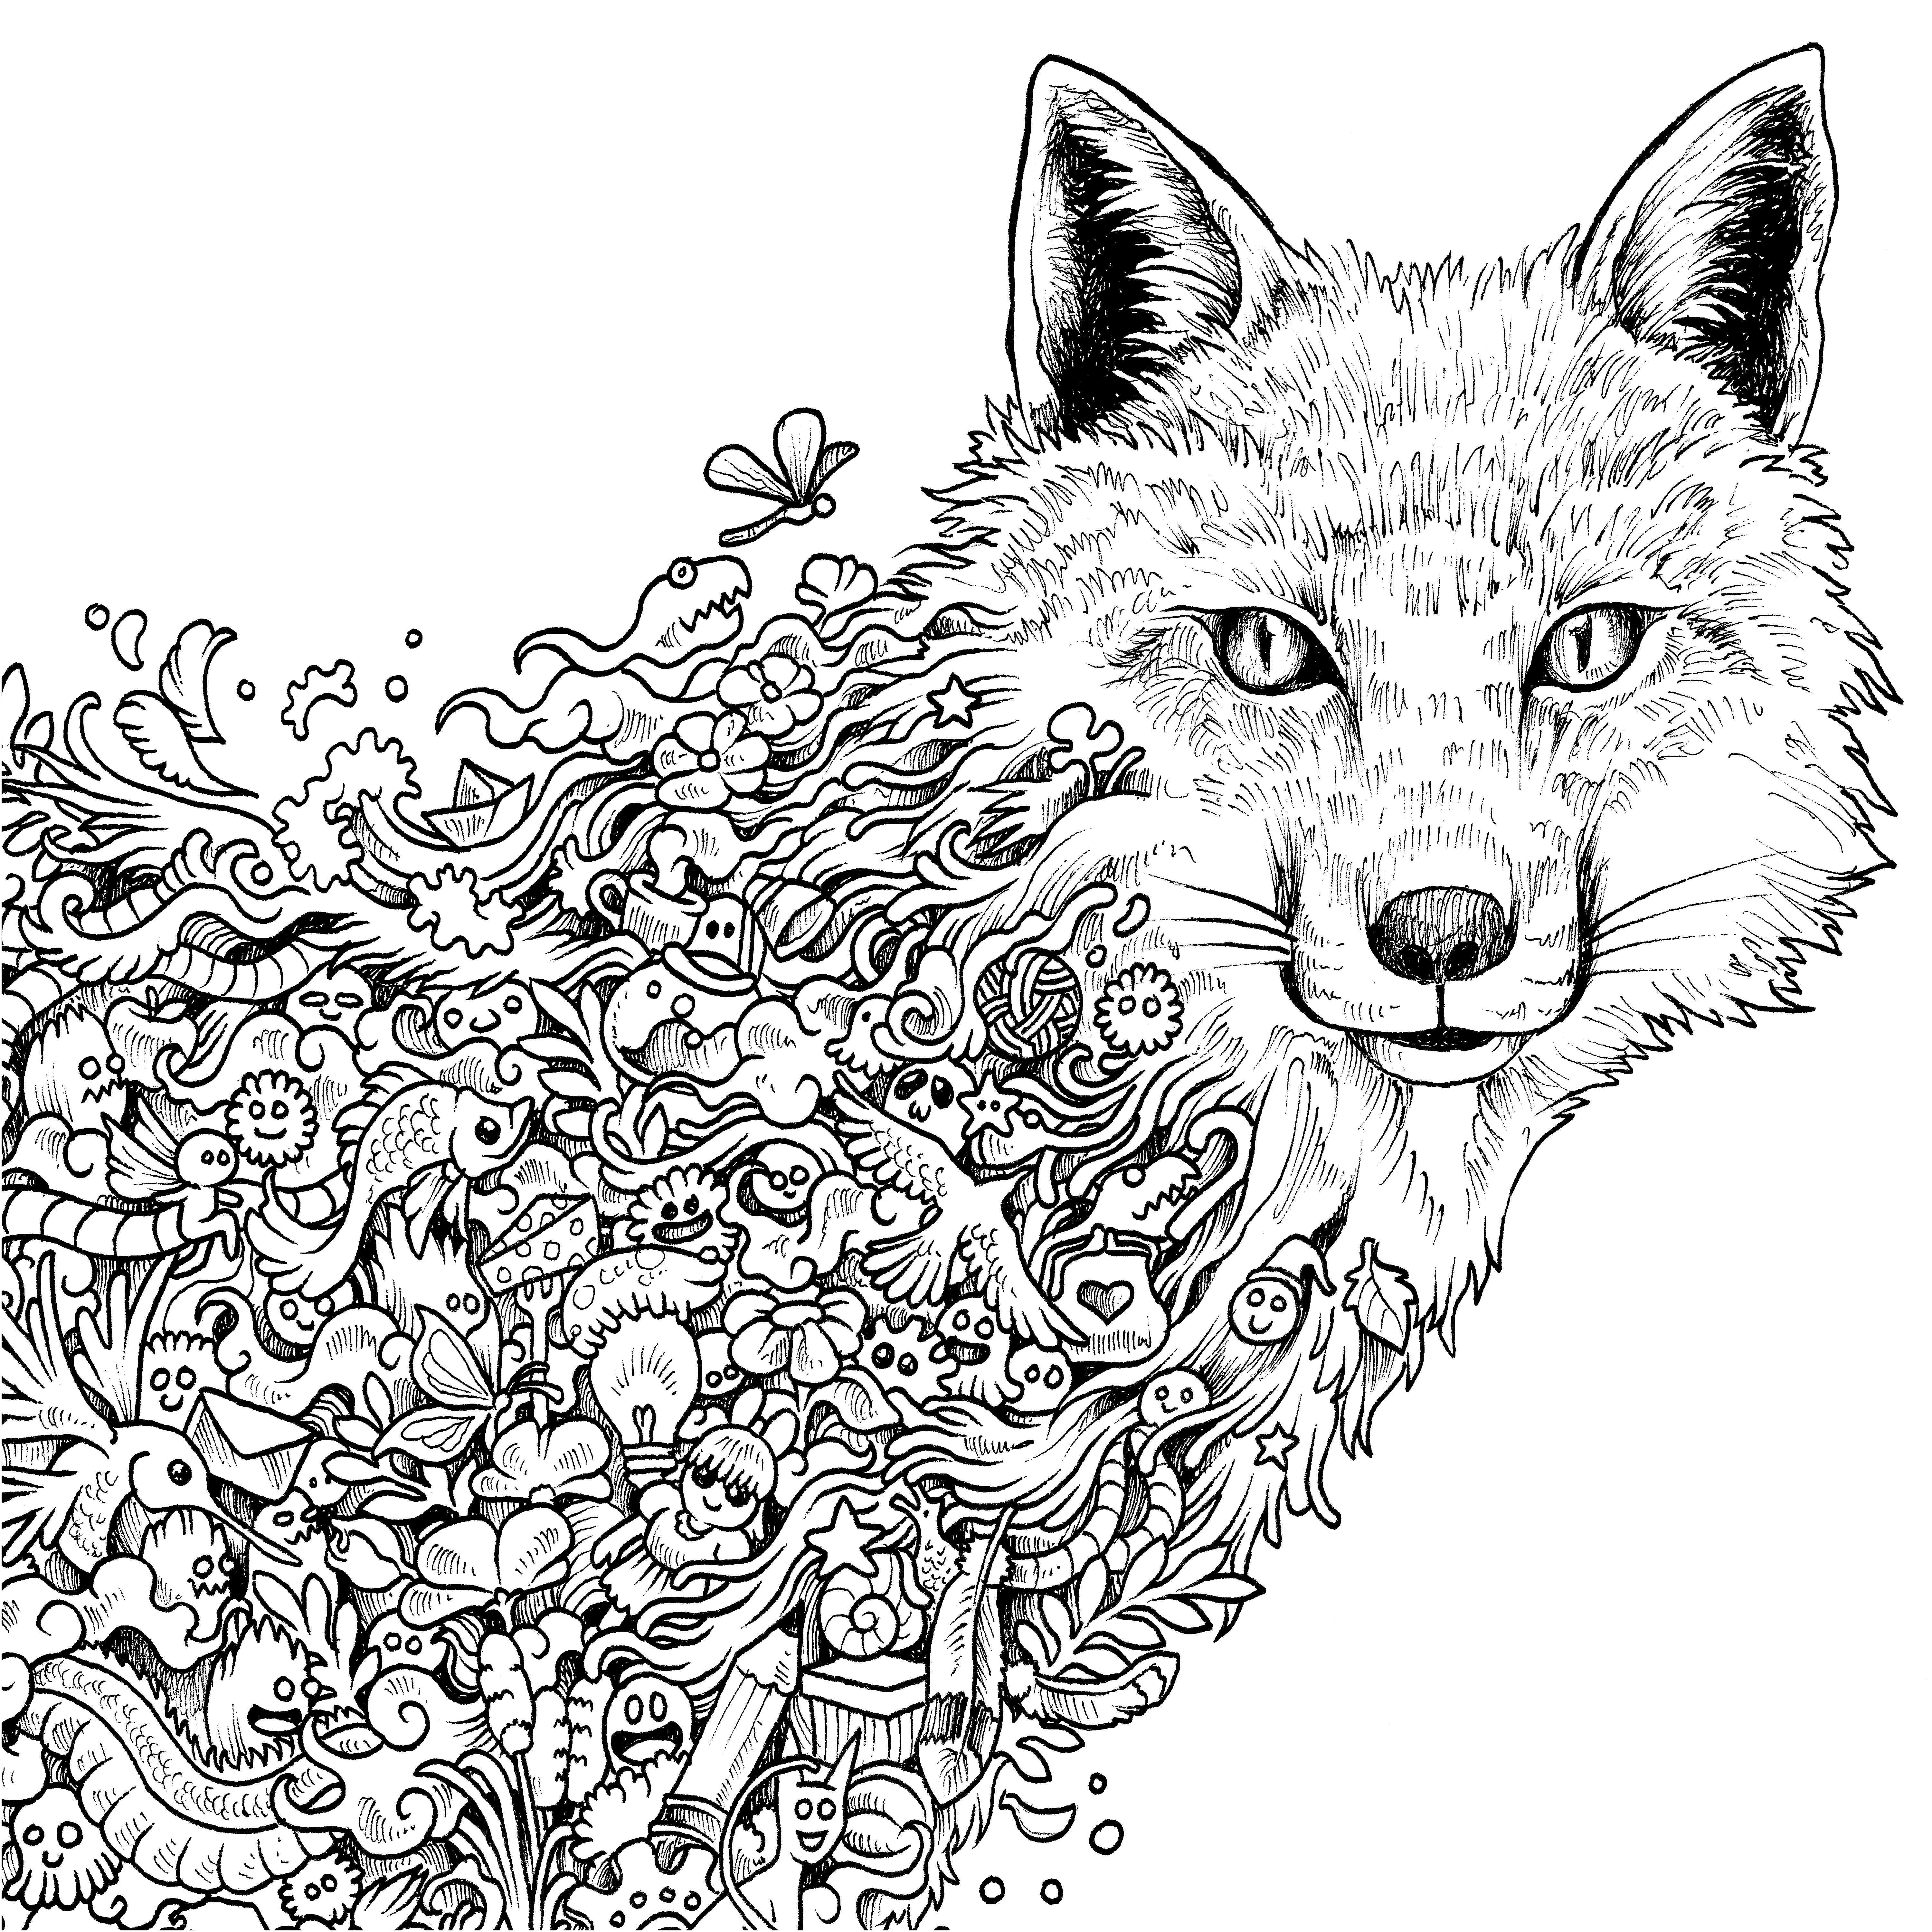 wolf pictures to color and print wolf printable coloring pages printable free coloring sheets color to print pictures wolf and